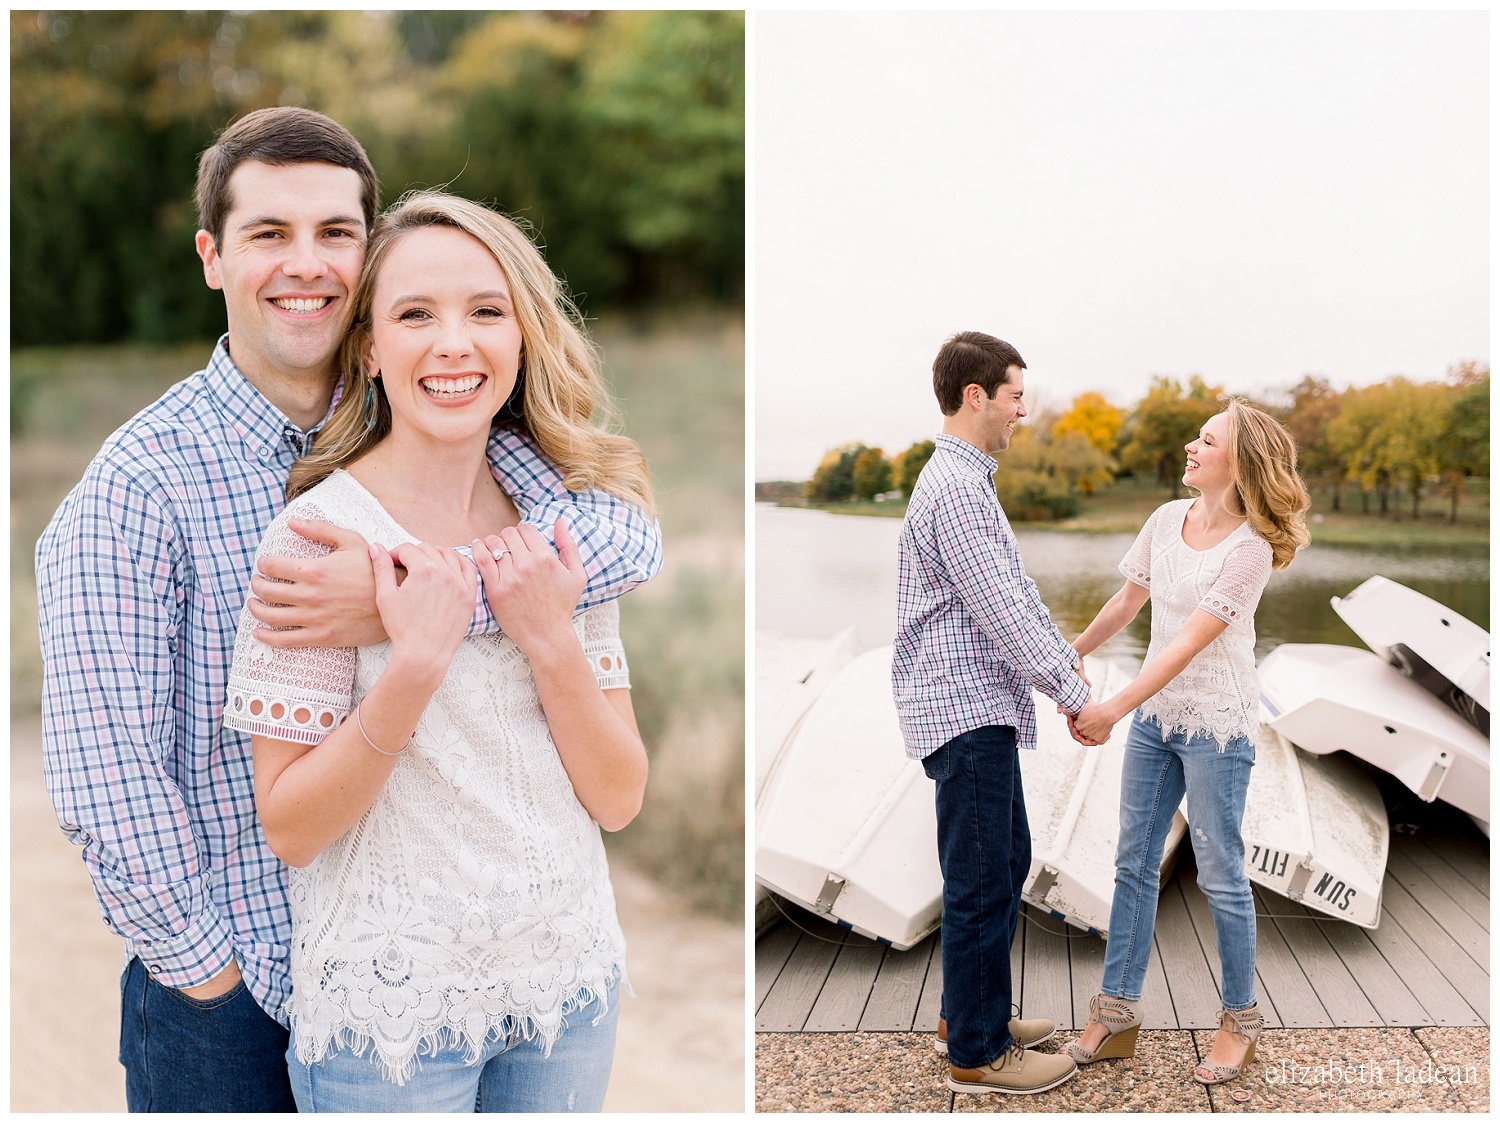 Colorful-Fall-Engagement-Photos-in-KC-C+B-2018-elizabeth-ladean-photography-photo_1793.jpg